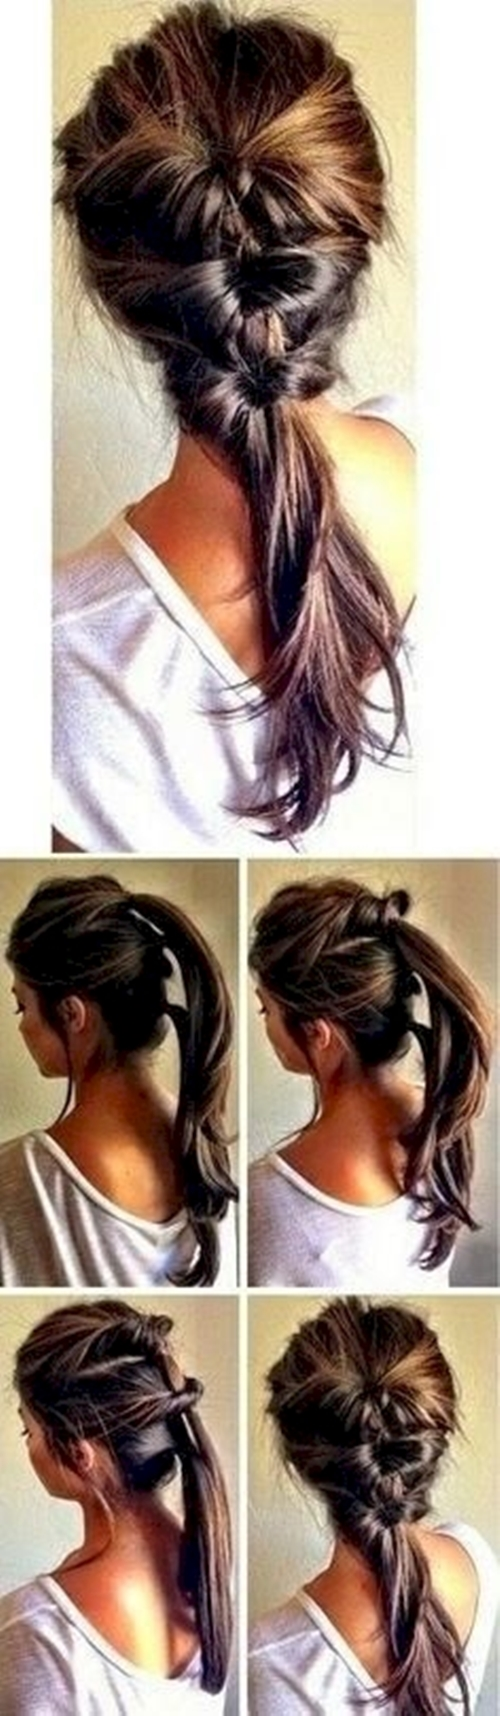 14 Awesome Ponytail Styles For Different Lengths And Types Of Hair Hair Styles Long Hair Styles Hair